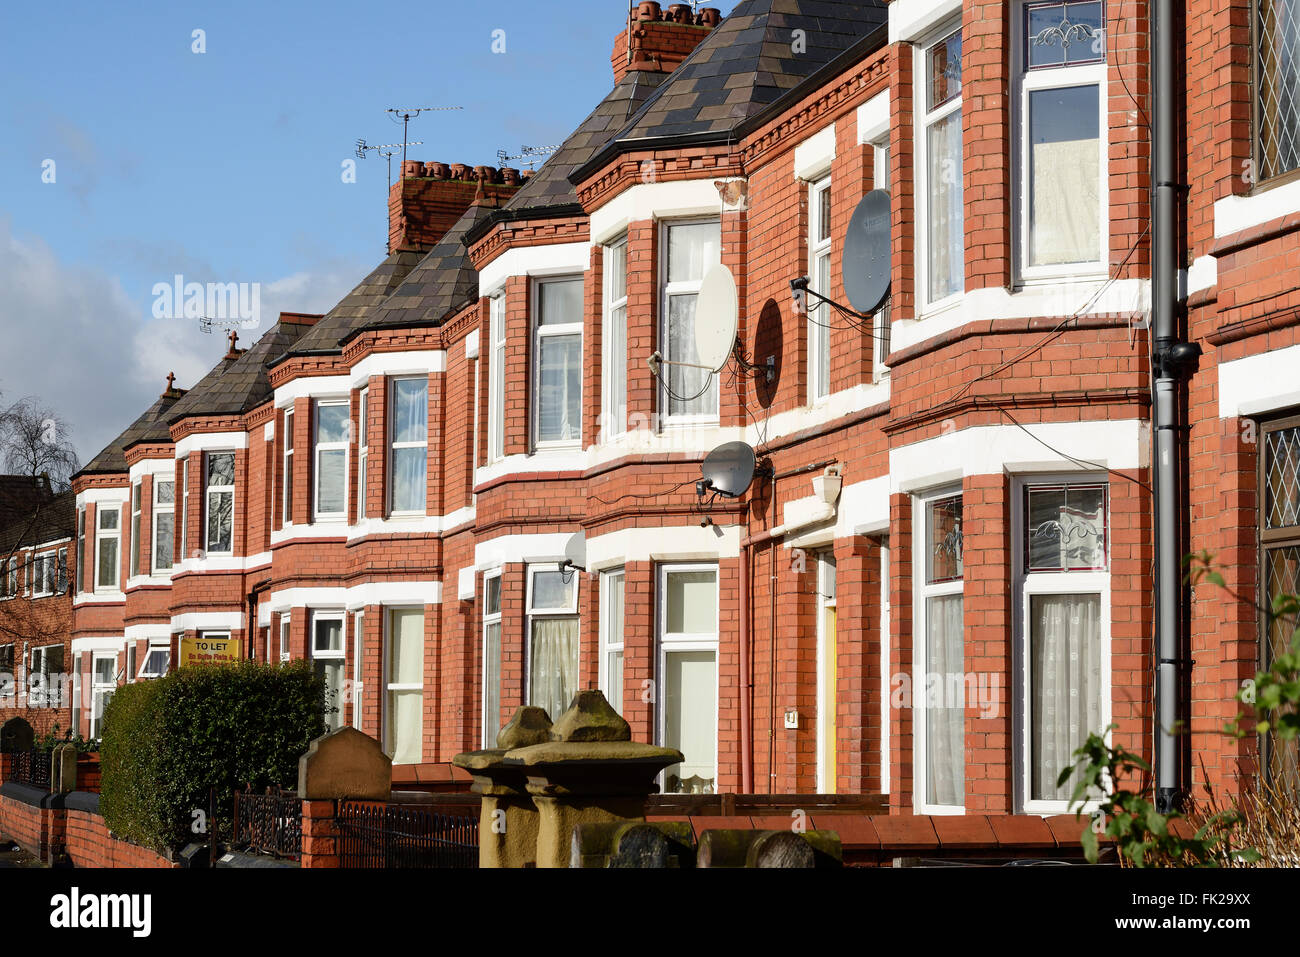 Row of bay fronted Victorian terraced houses Stock Photo